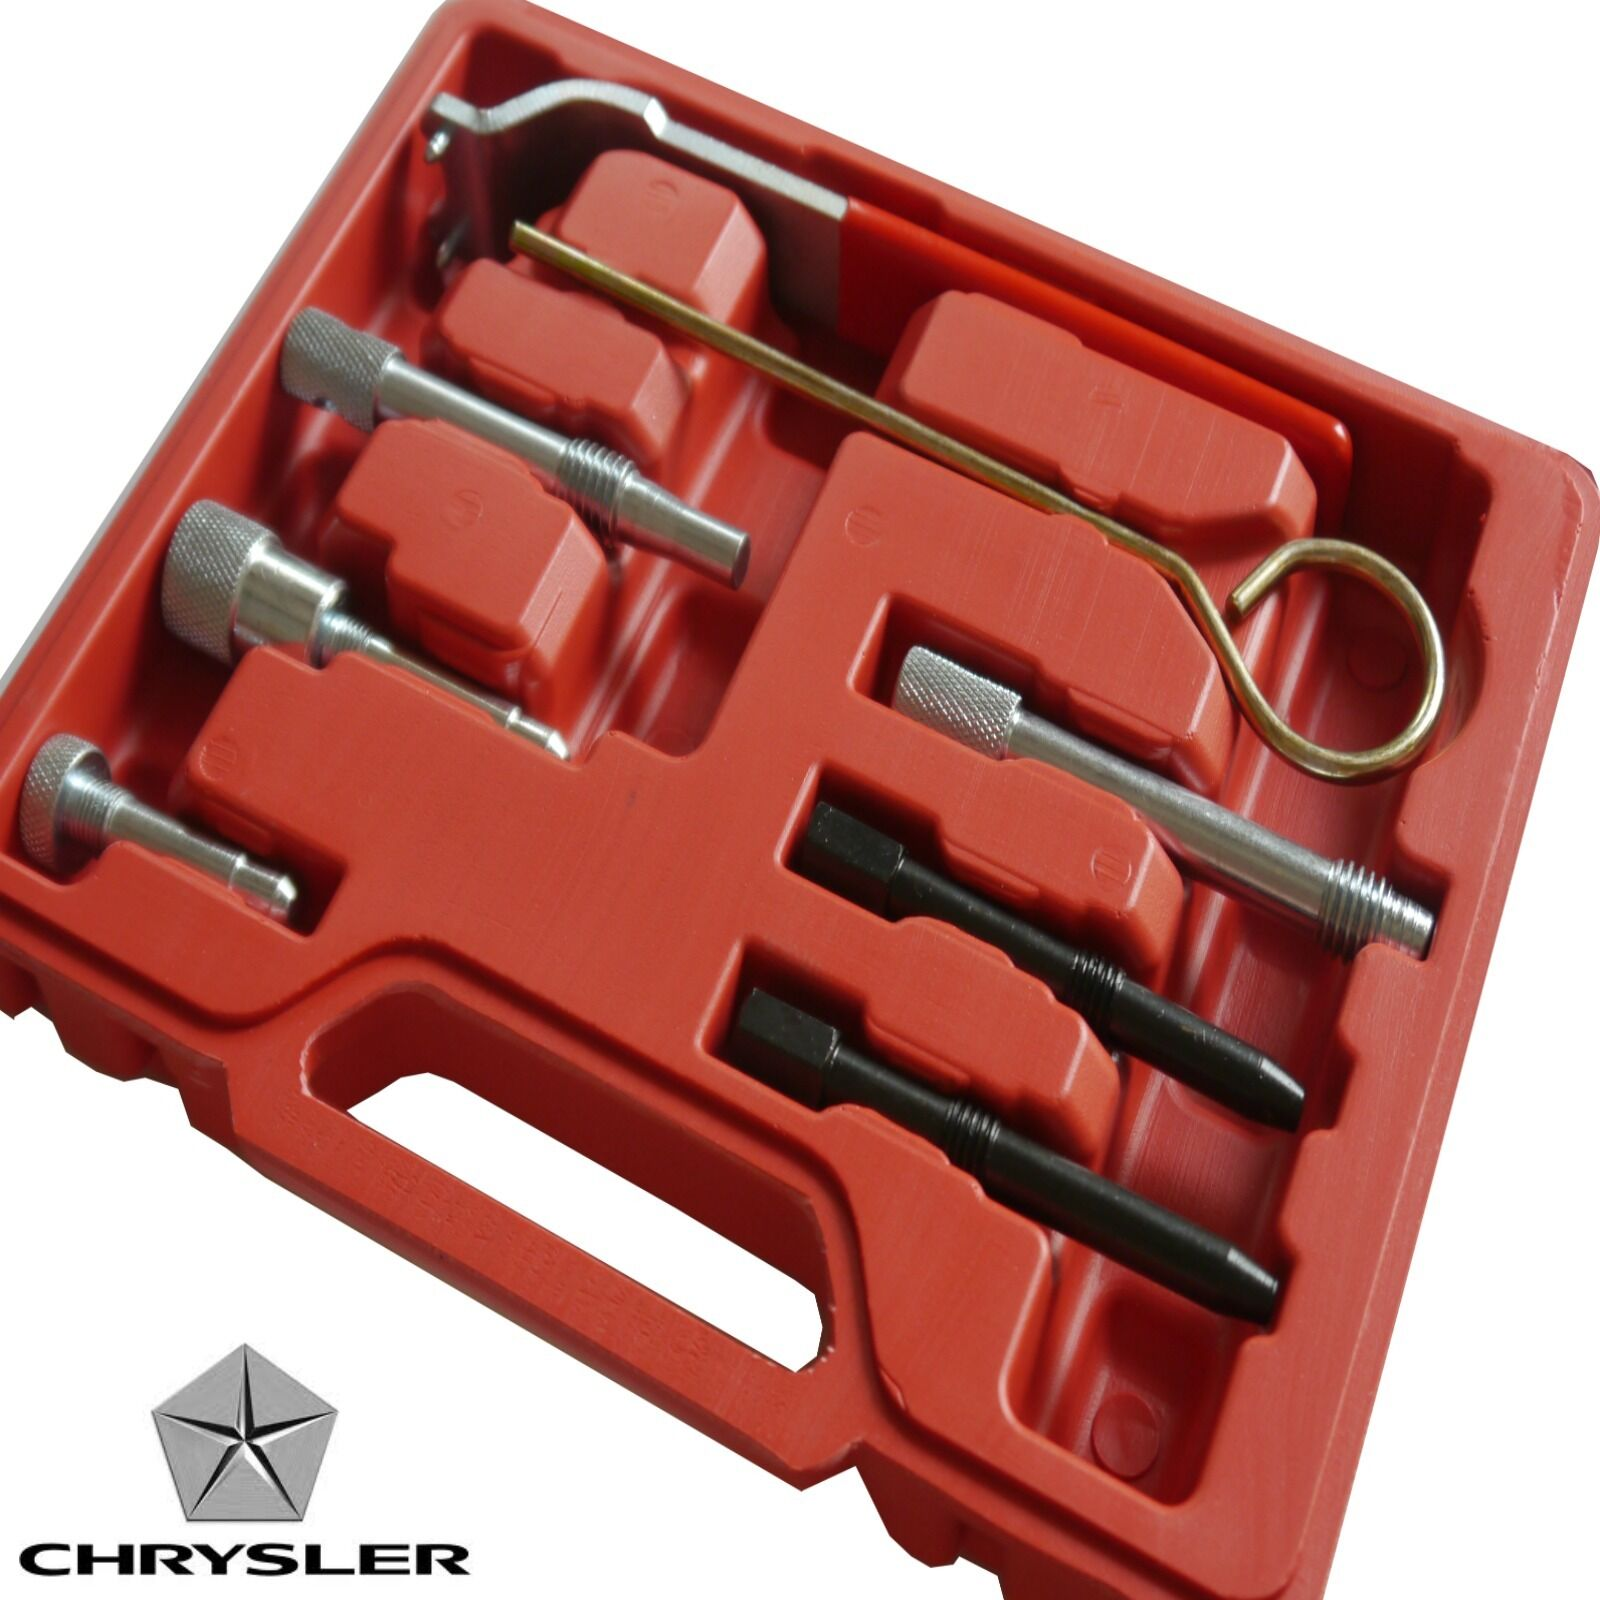 Vw 1600 Engine Removal: Chrysler Timing Setting Locking Tool Kit Set Voyager Jeep